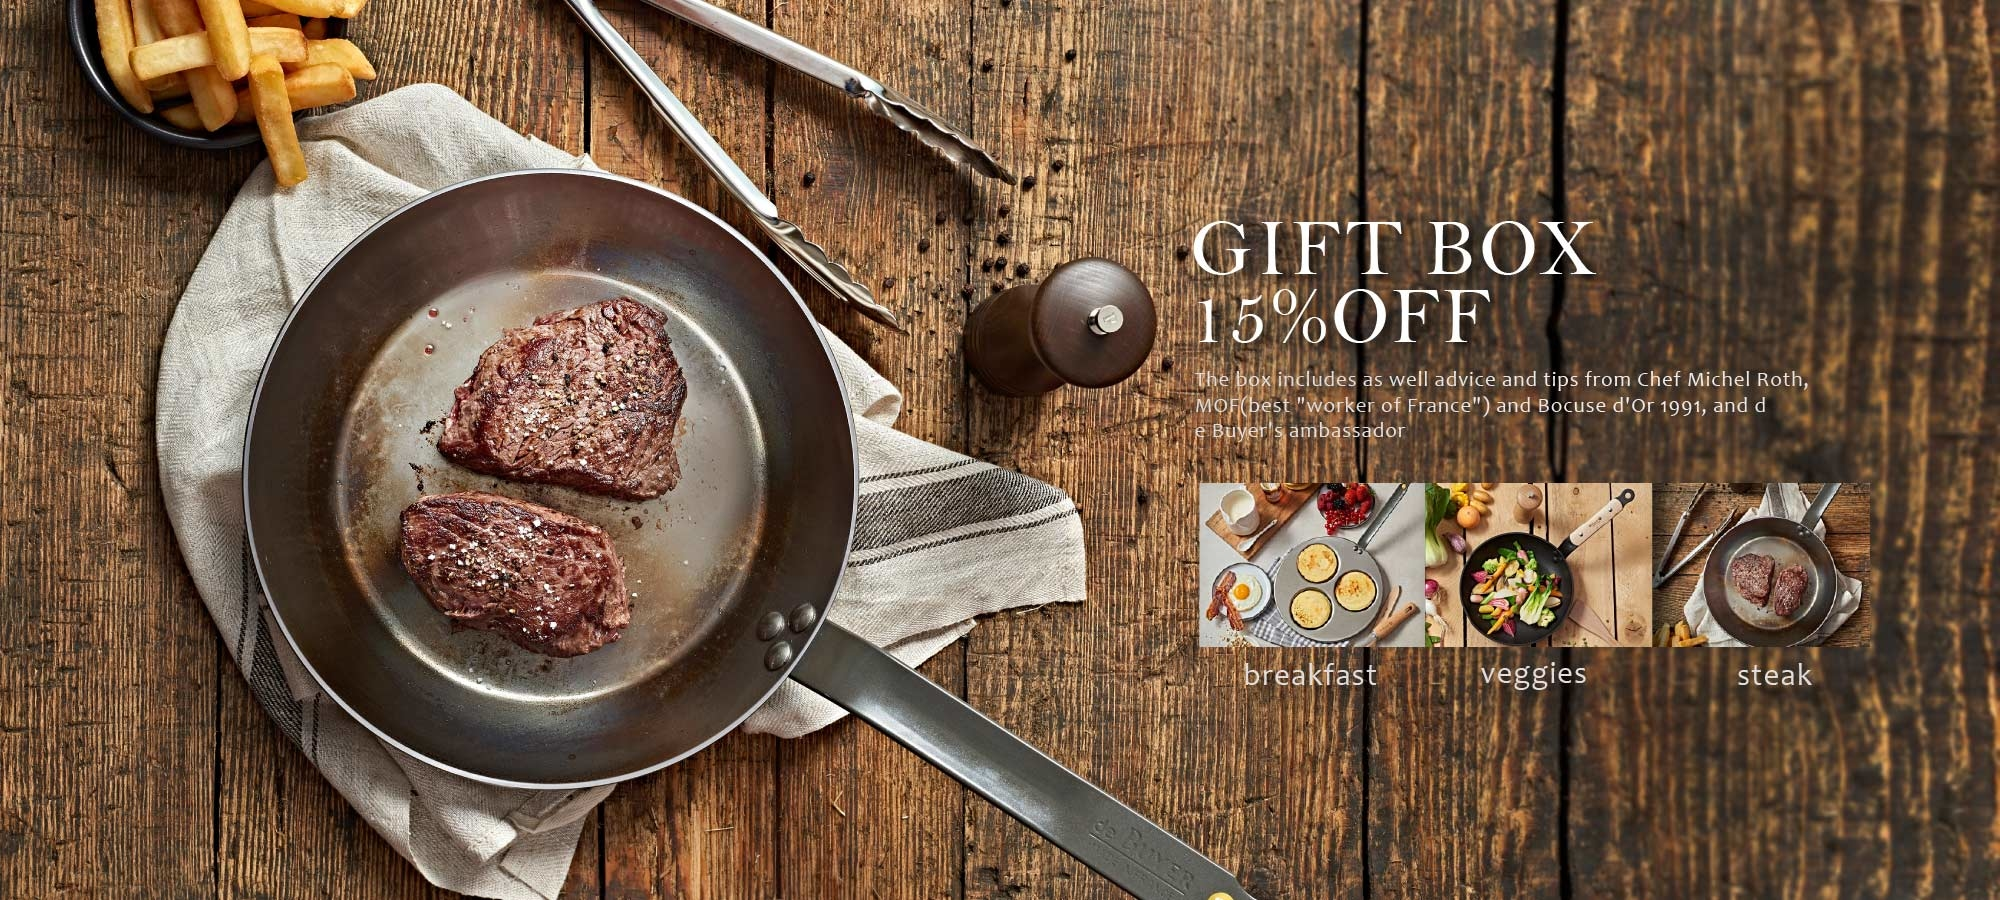 de Buyer frypan gift boxes 15% off all may - sets of iron or nonstick pans with utensils and mills for veggie or steak lovers